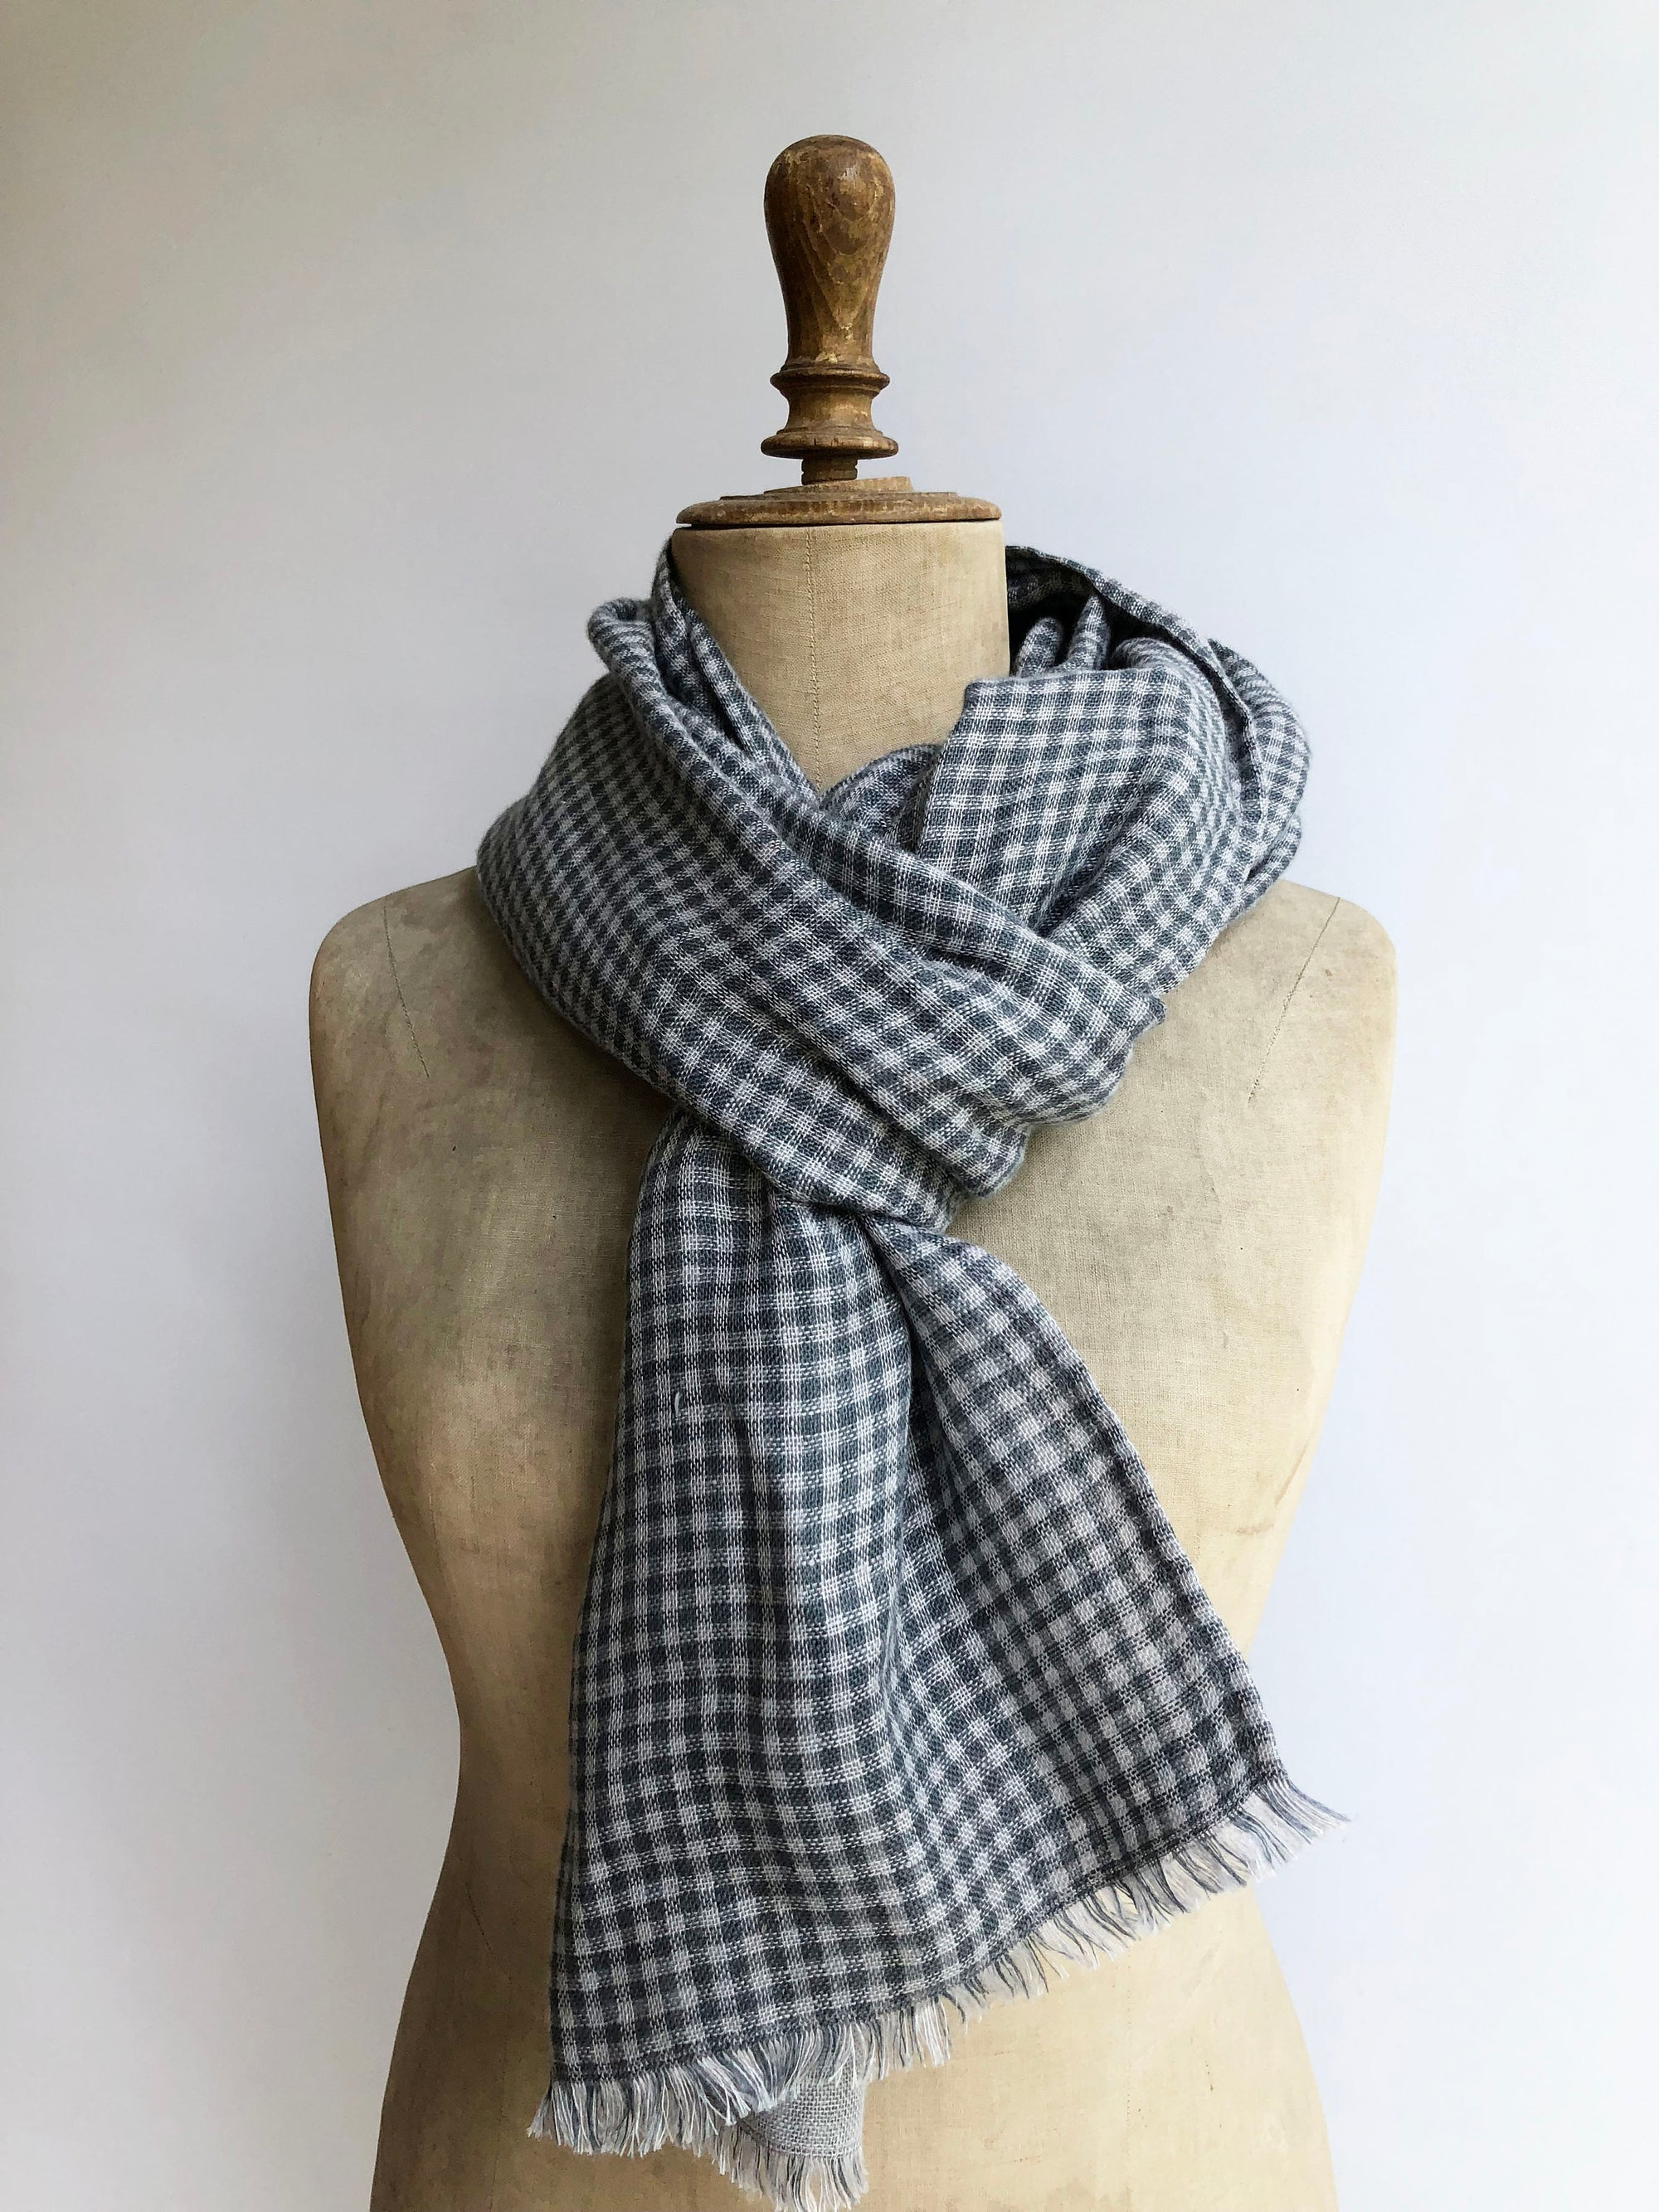 Warm Scarf from Linen, Autumn Scarf, Winter Scarf, Gift for Men, Scarf for Men, Checkered Blue Grey Scarf, Double sided scarf, Grey Scarf